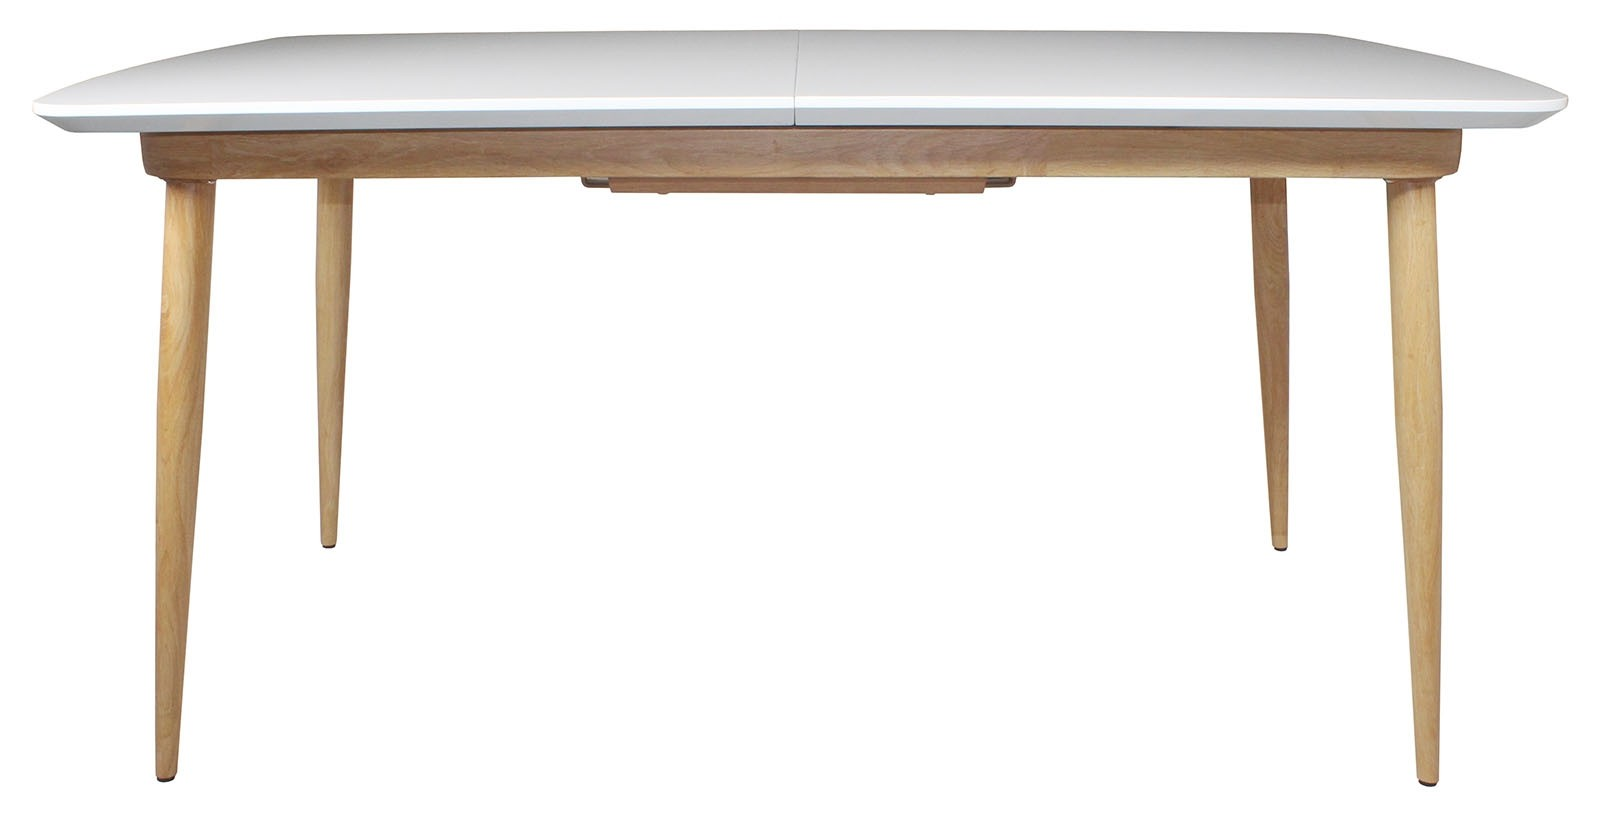 CONTEMPORARY Large Extending Dining Table - White